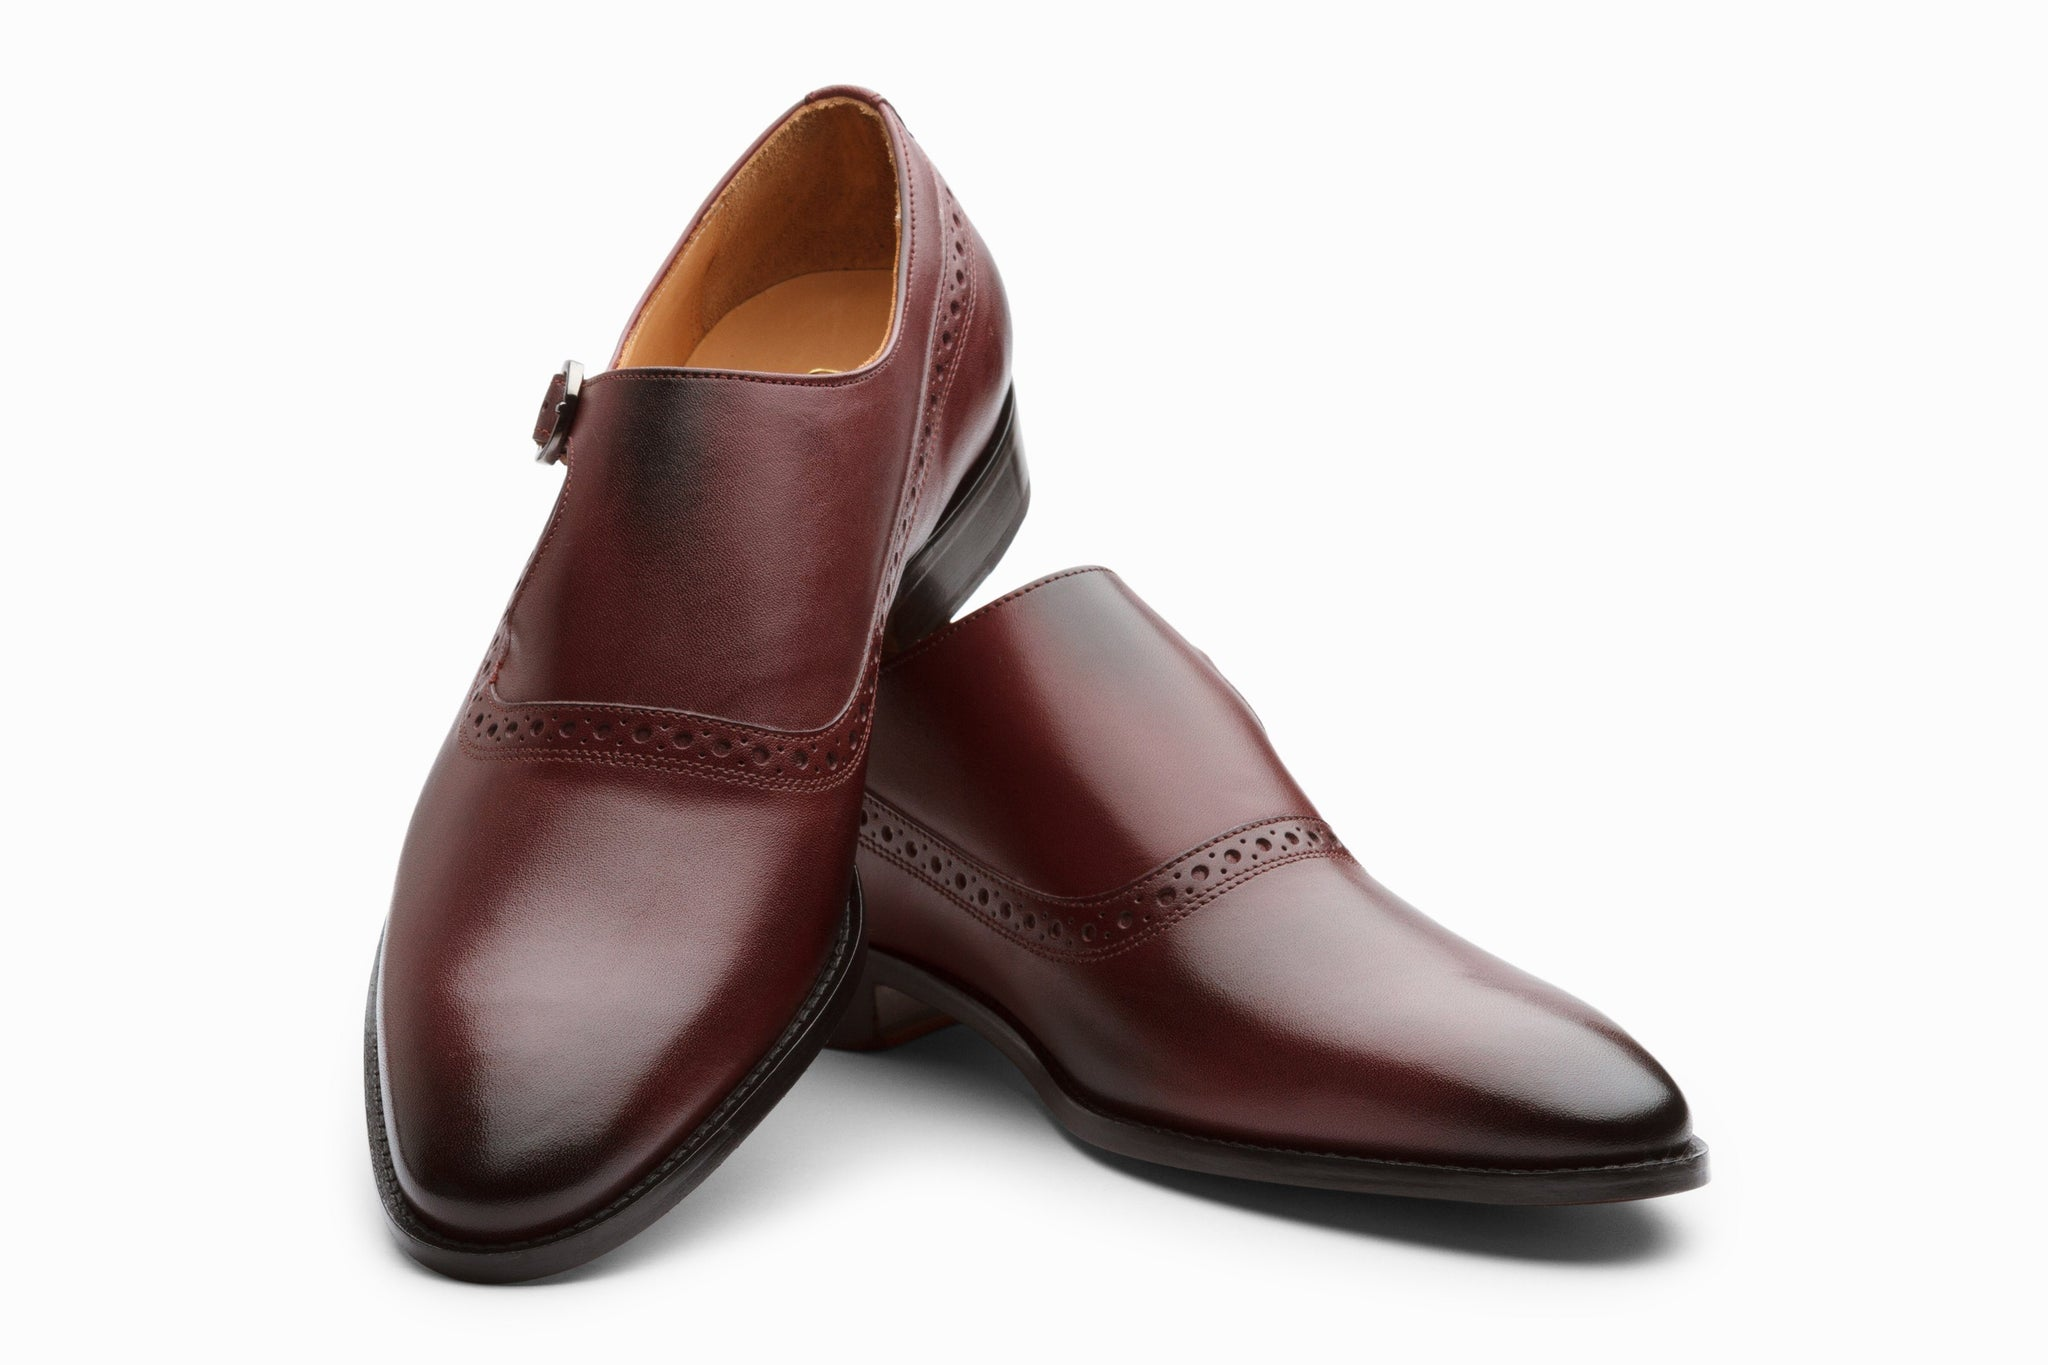 Monkstraps - Single Strap Brogue Monk - Burgundy